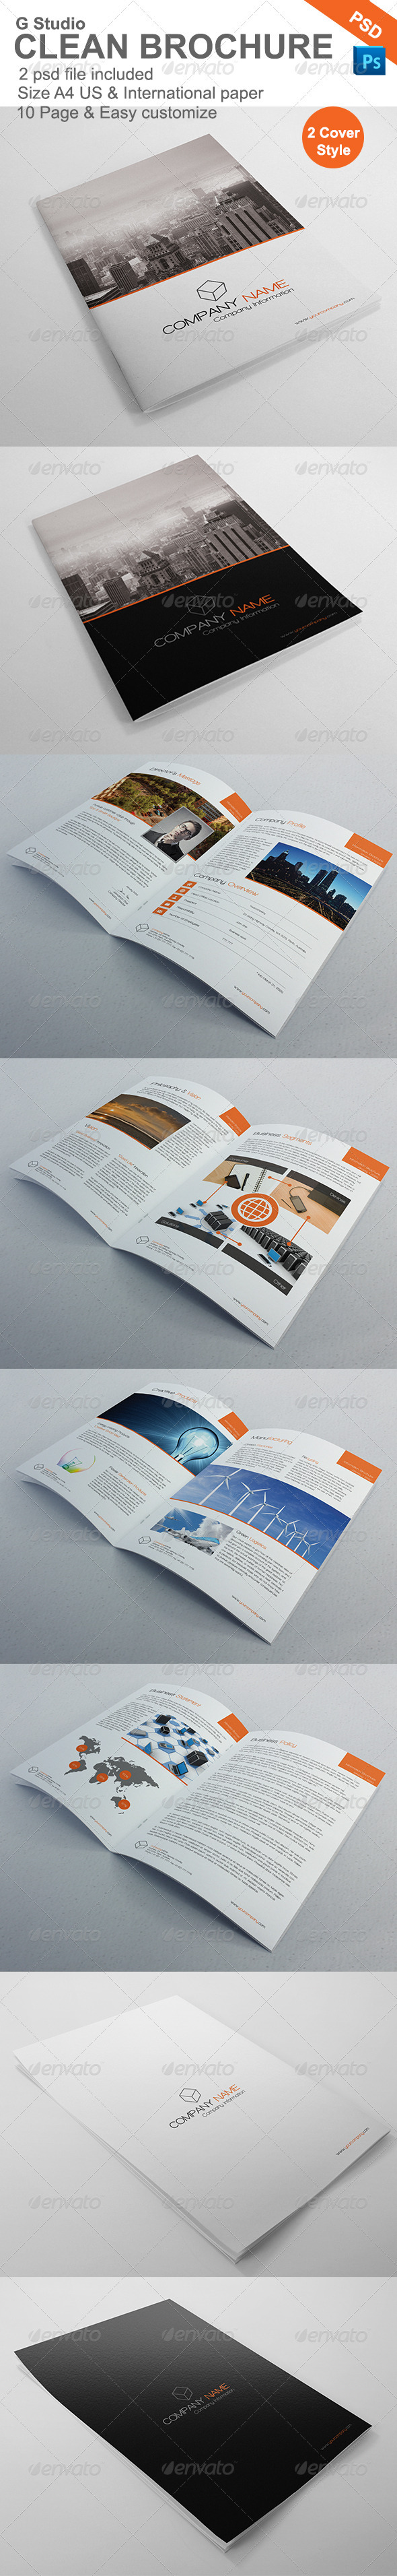 Gstudio Clean Brochure Template - Brochures Print Templates